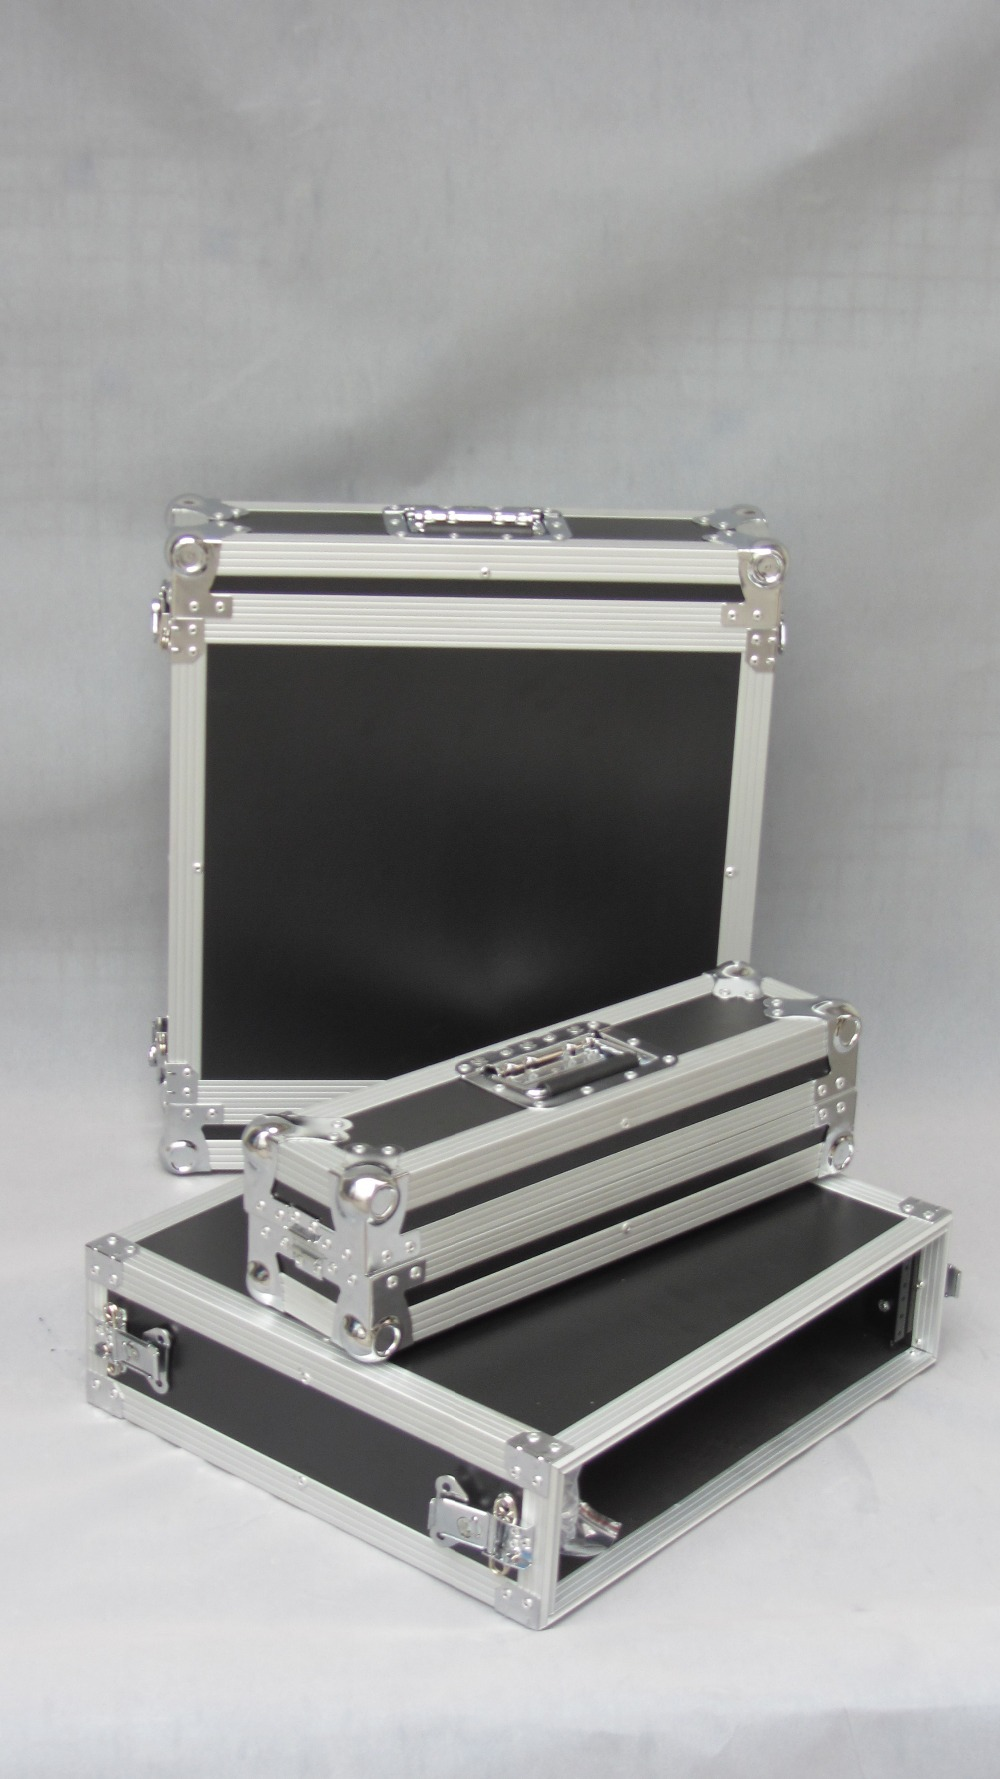 Heavy Duty aluminum flight cases rack mount computer case